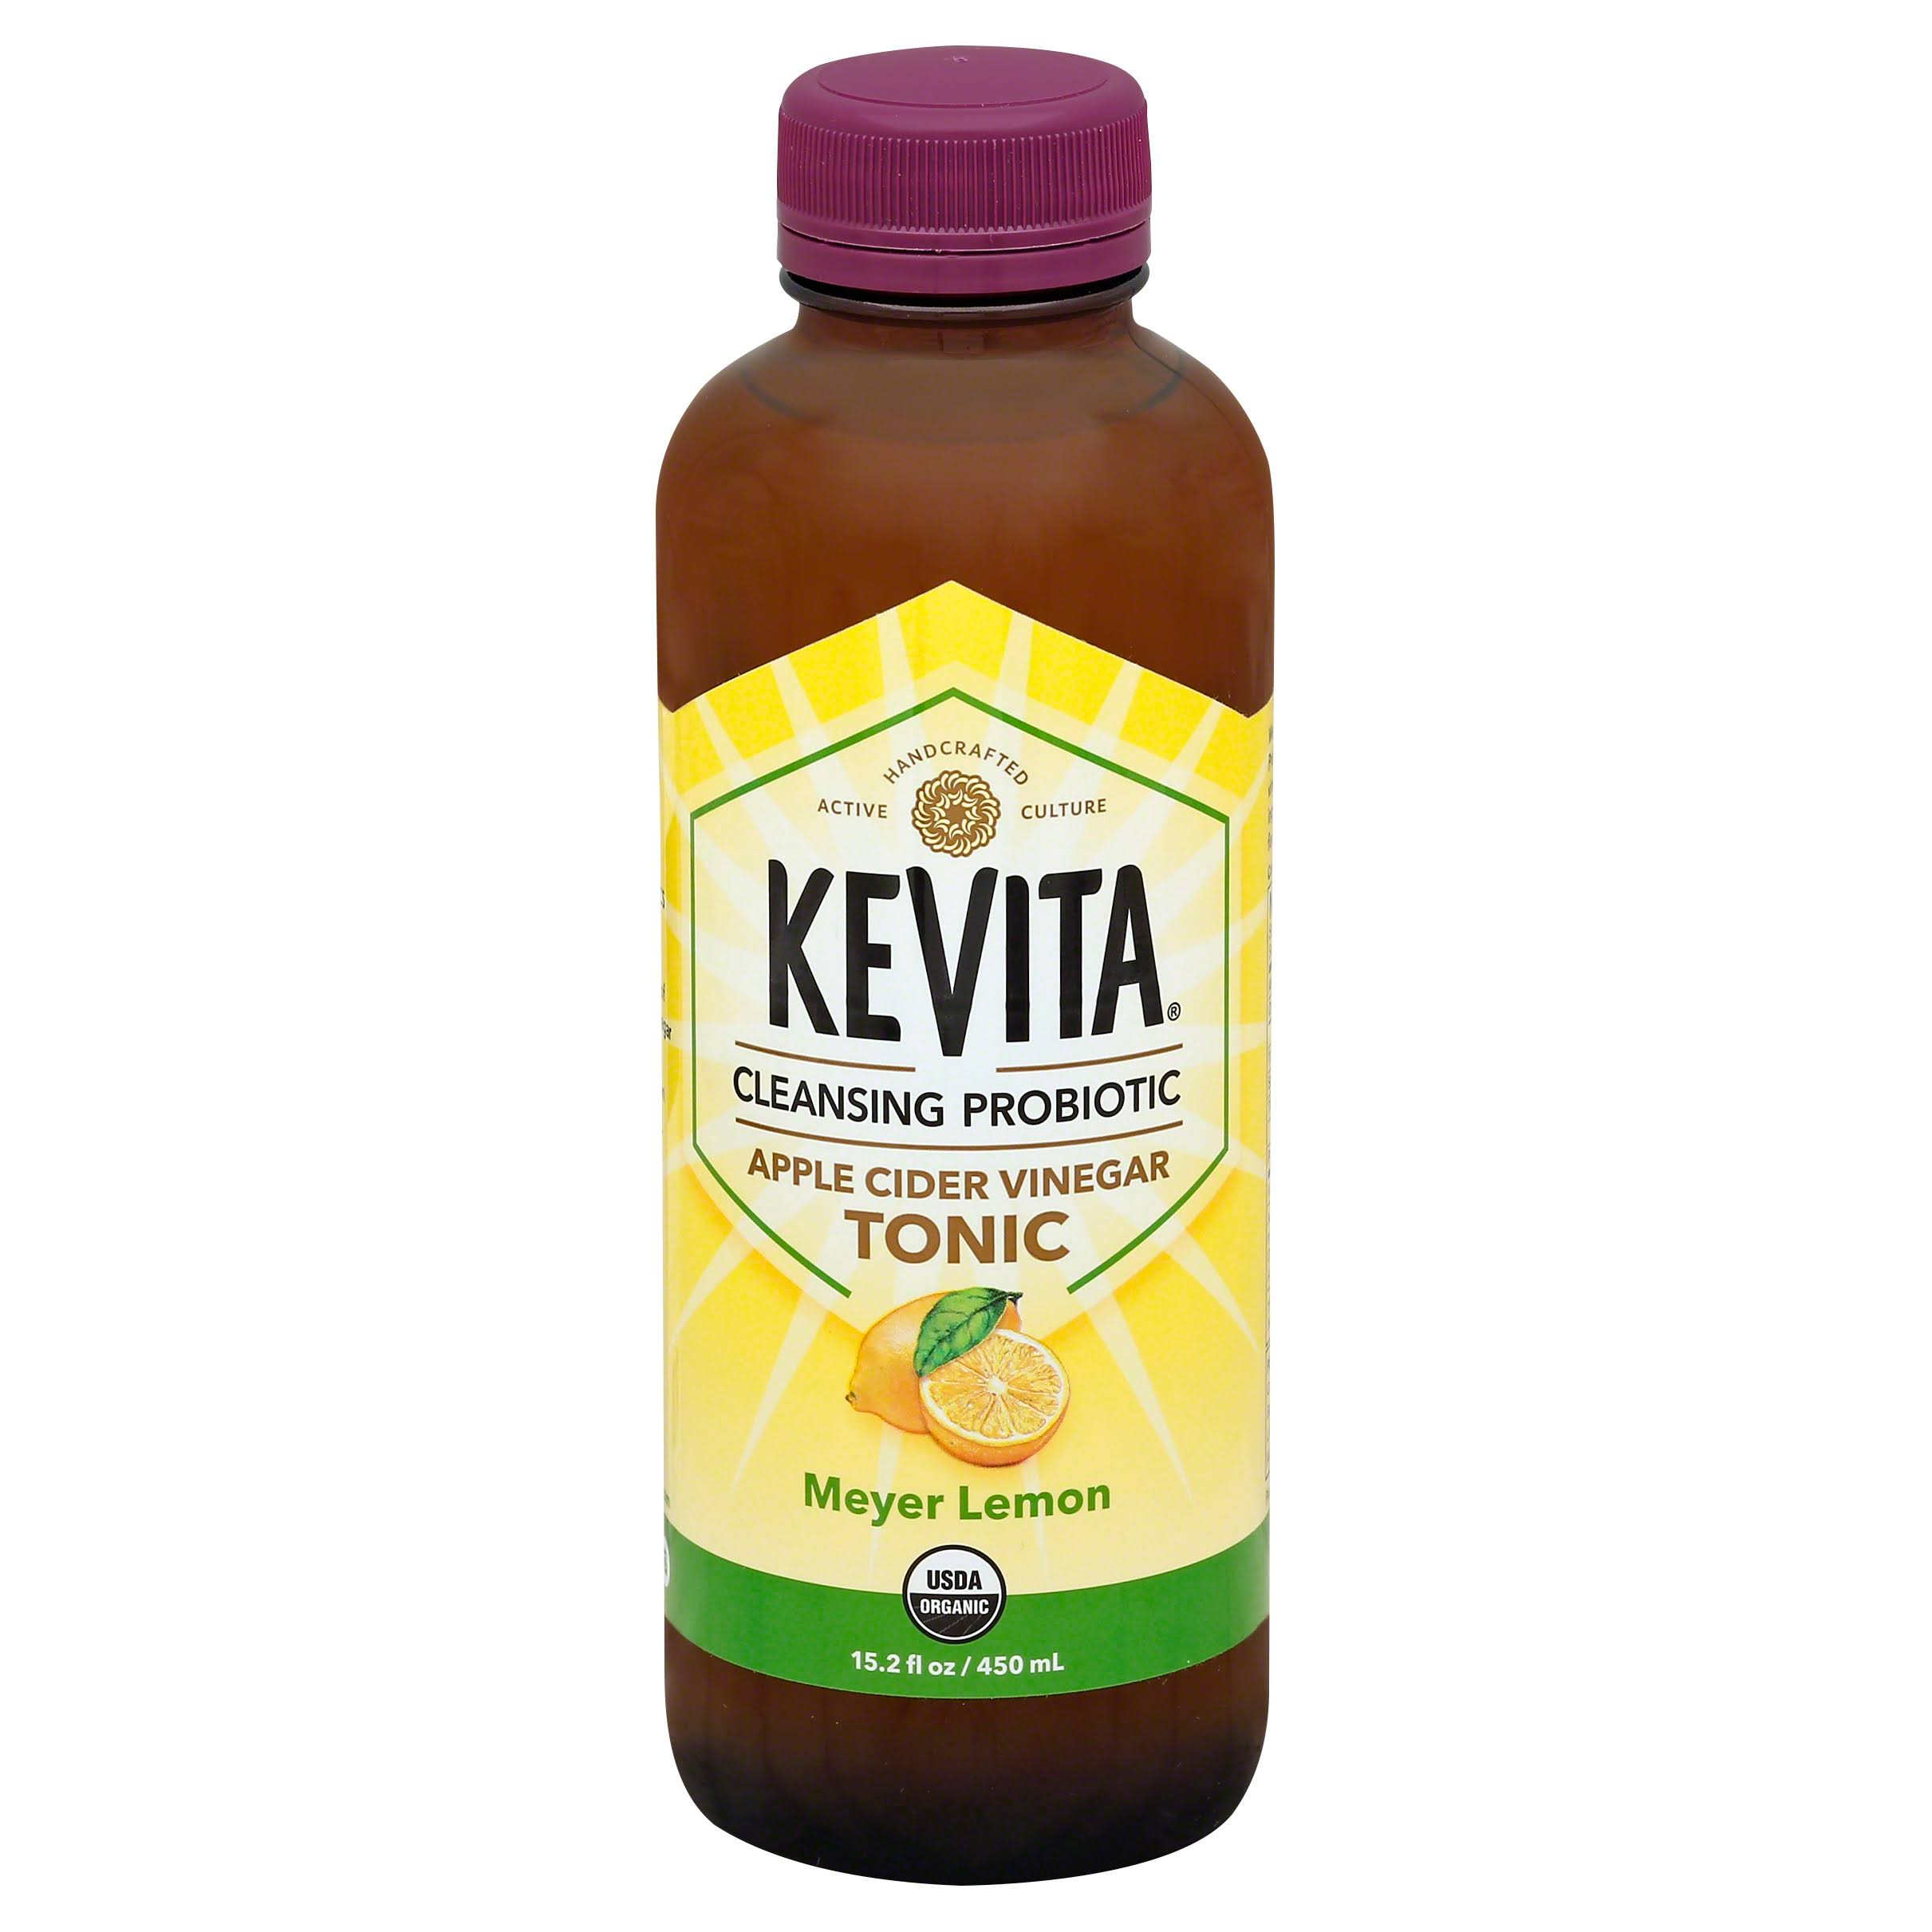 KeVita Tonic, Apple Cider Vinegar, Meyer Lemon - 15.2 fl oz